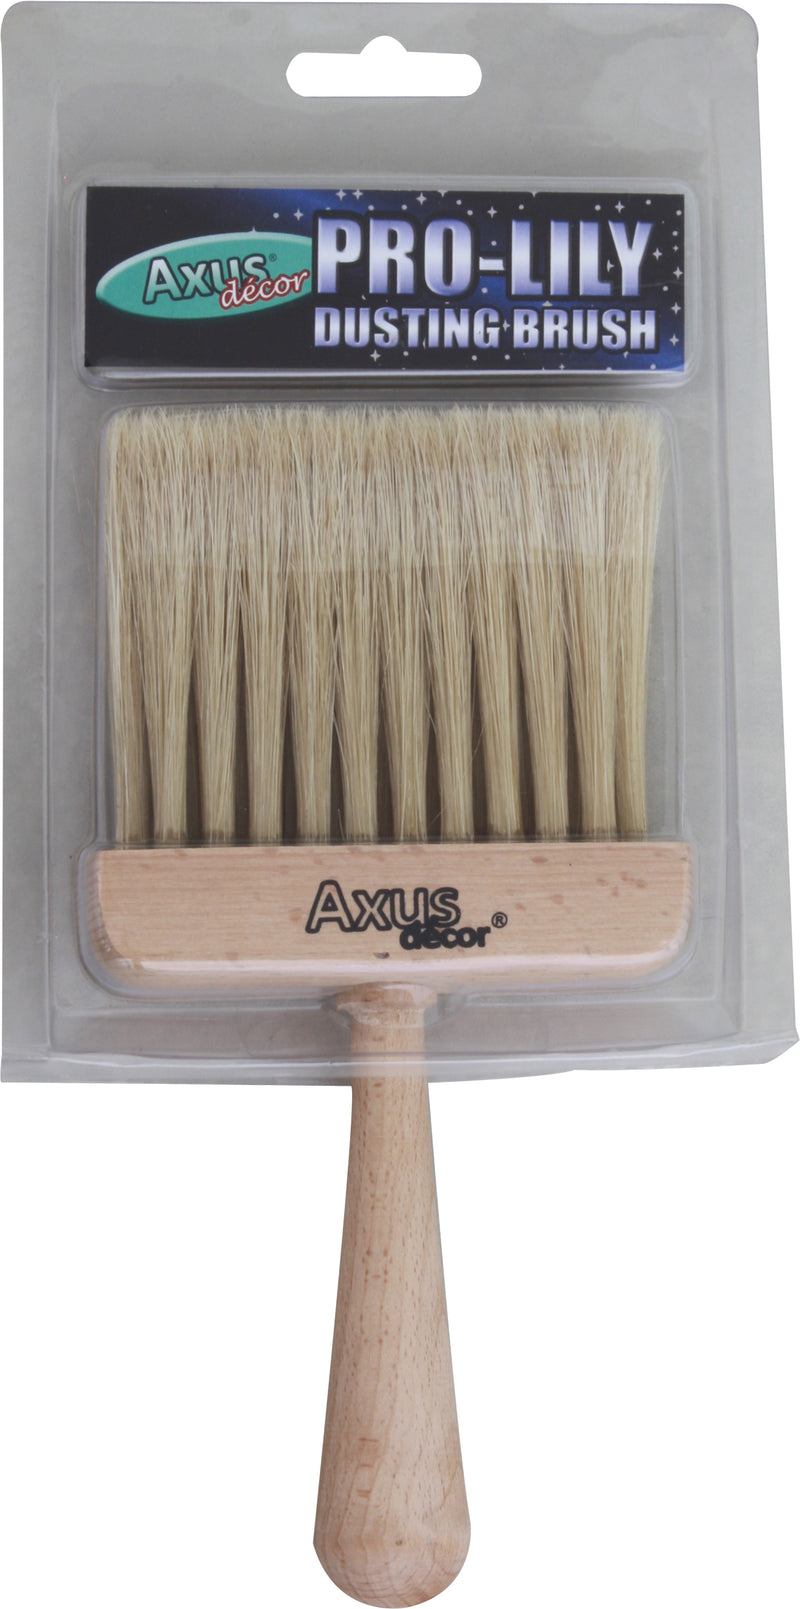 Axus Dusting Brush